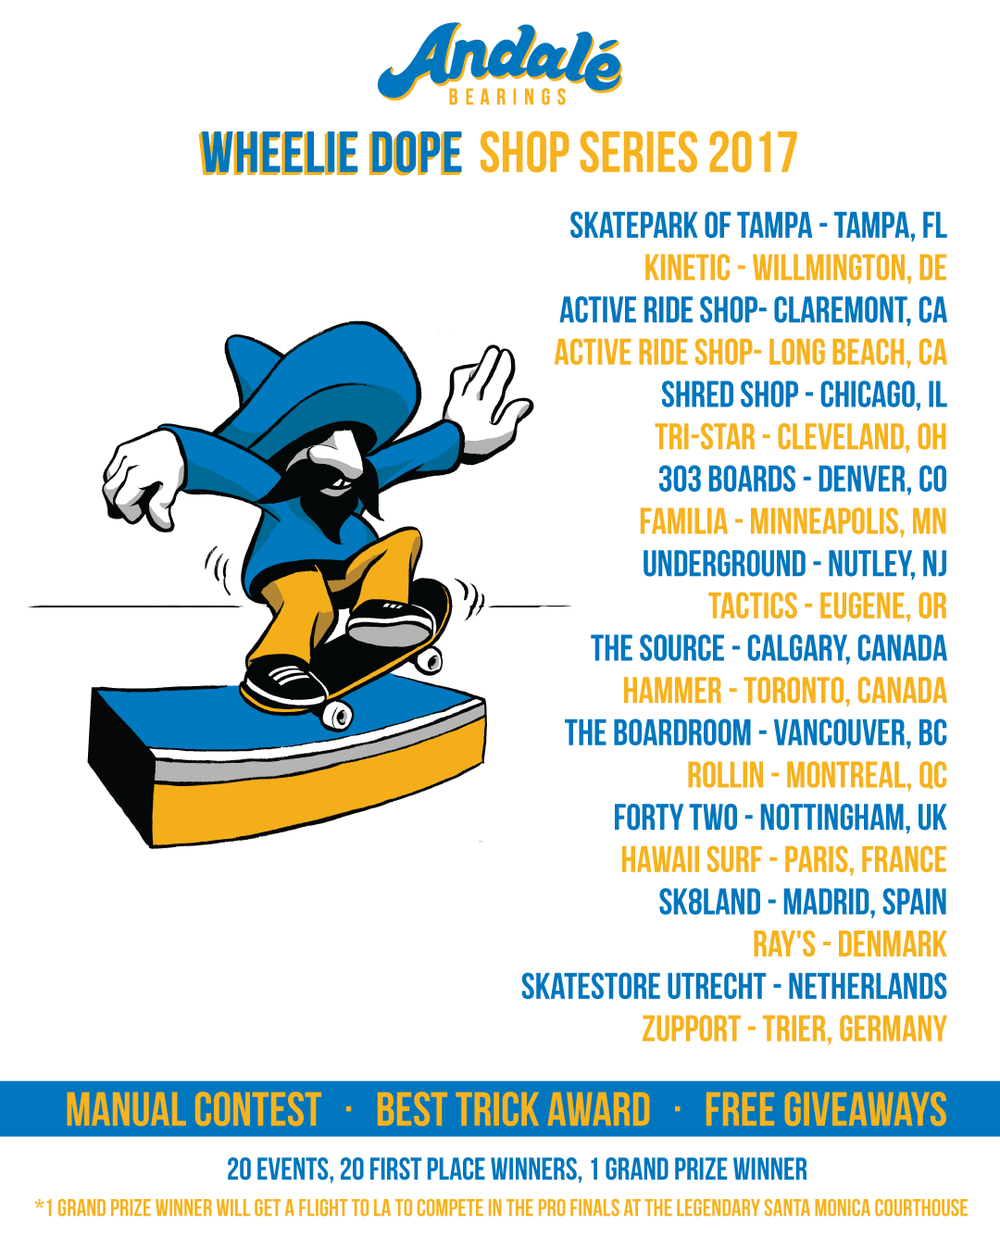 andale wheelie dope shop series 2017